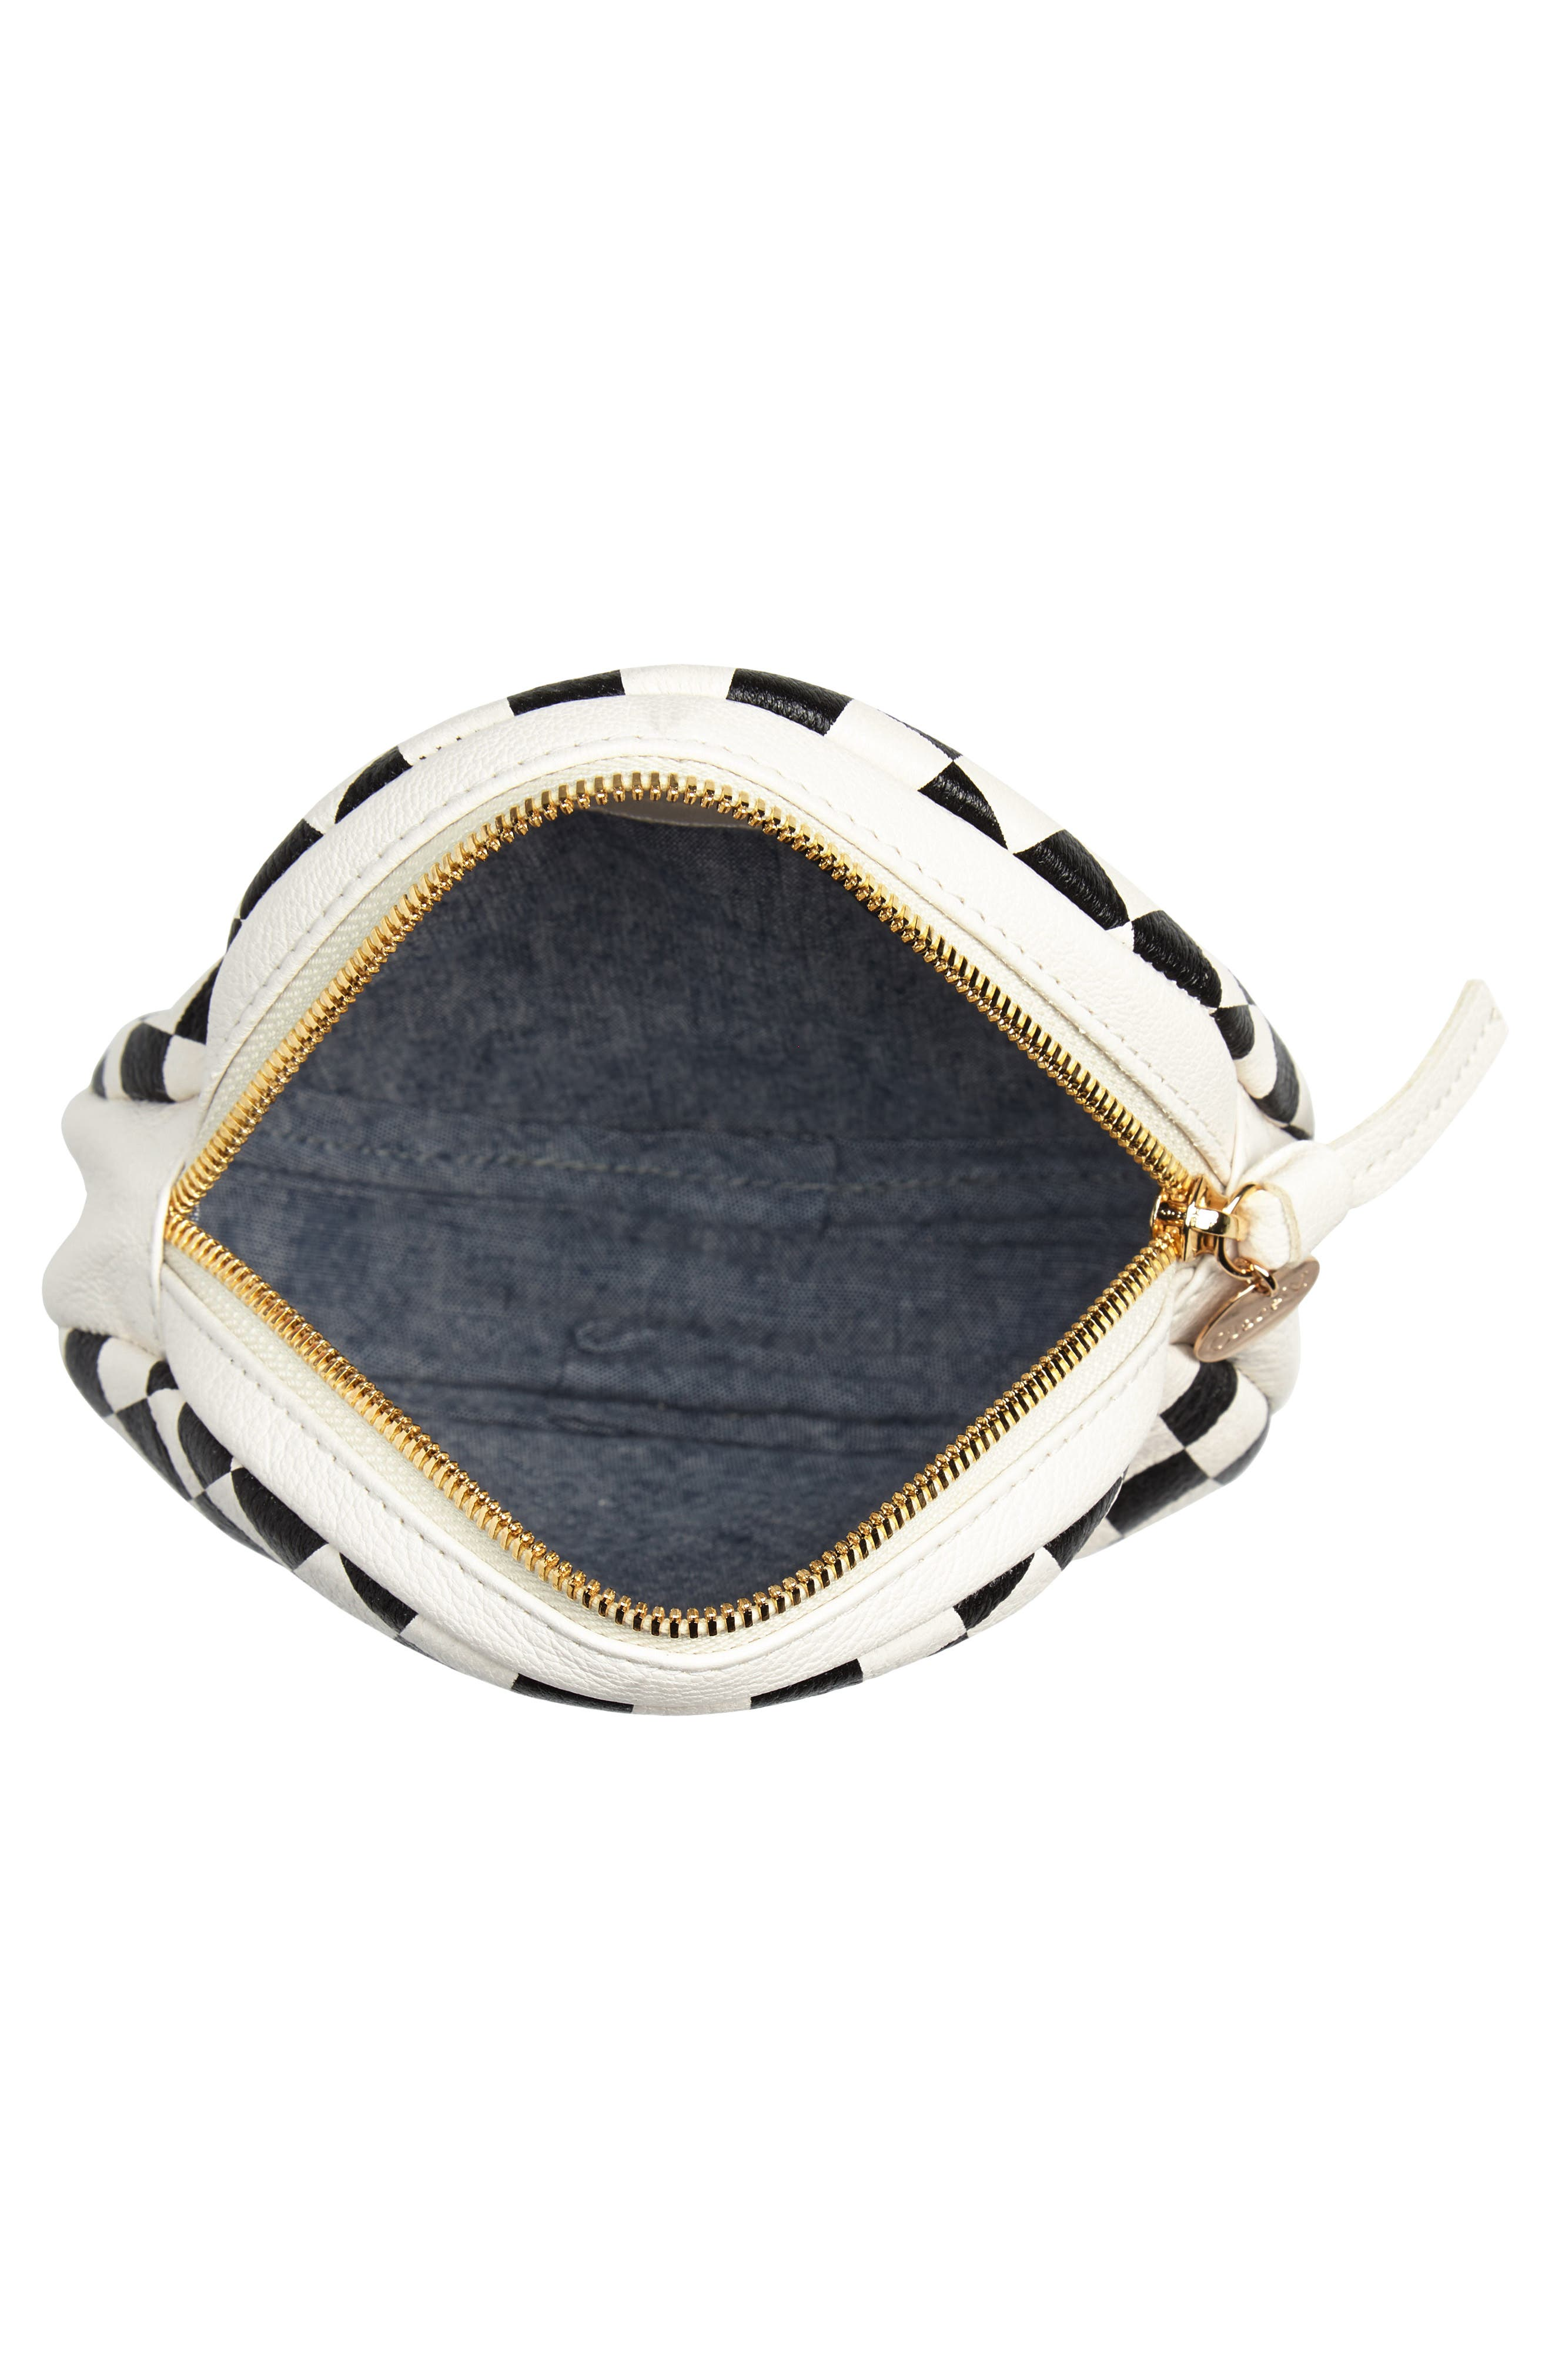 Checkered Leather Circle Clutch,                             Alternate thumbnail 4, color,                             Cream/ Black Checker